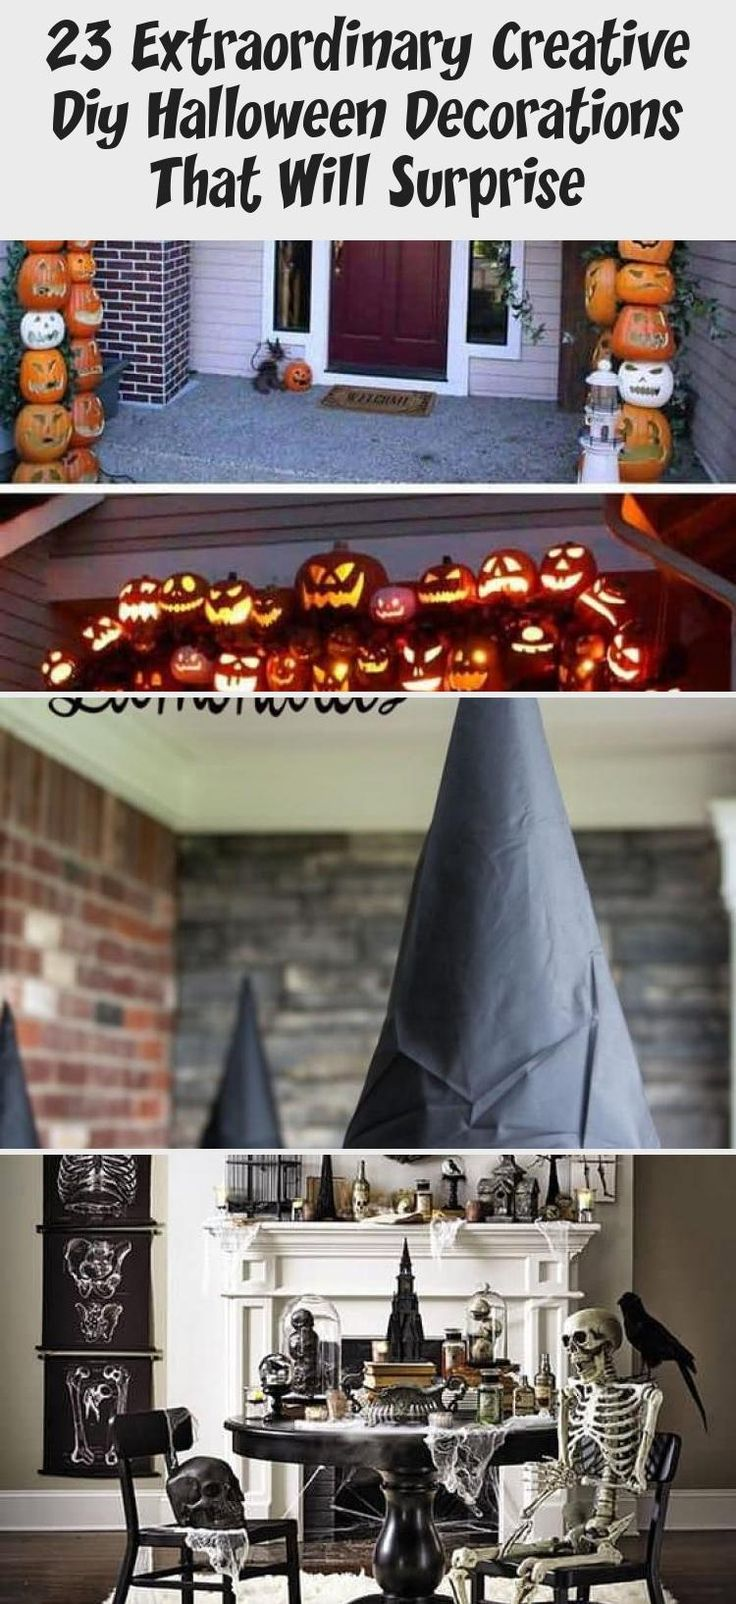 23 Extraordinary Creative Diy Halloween Decorations That